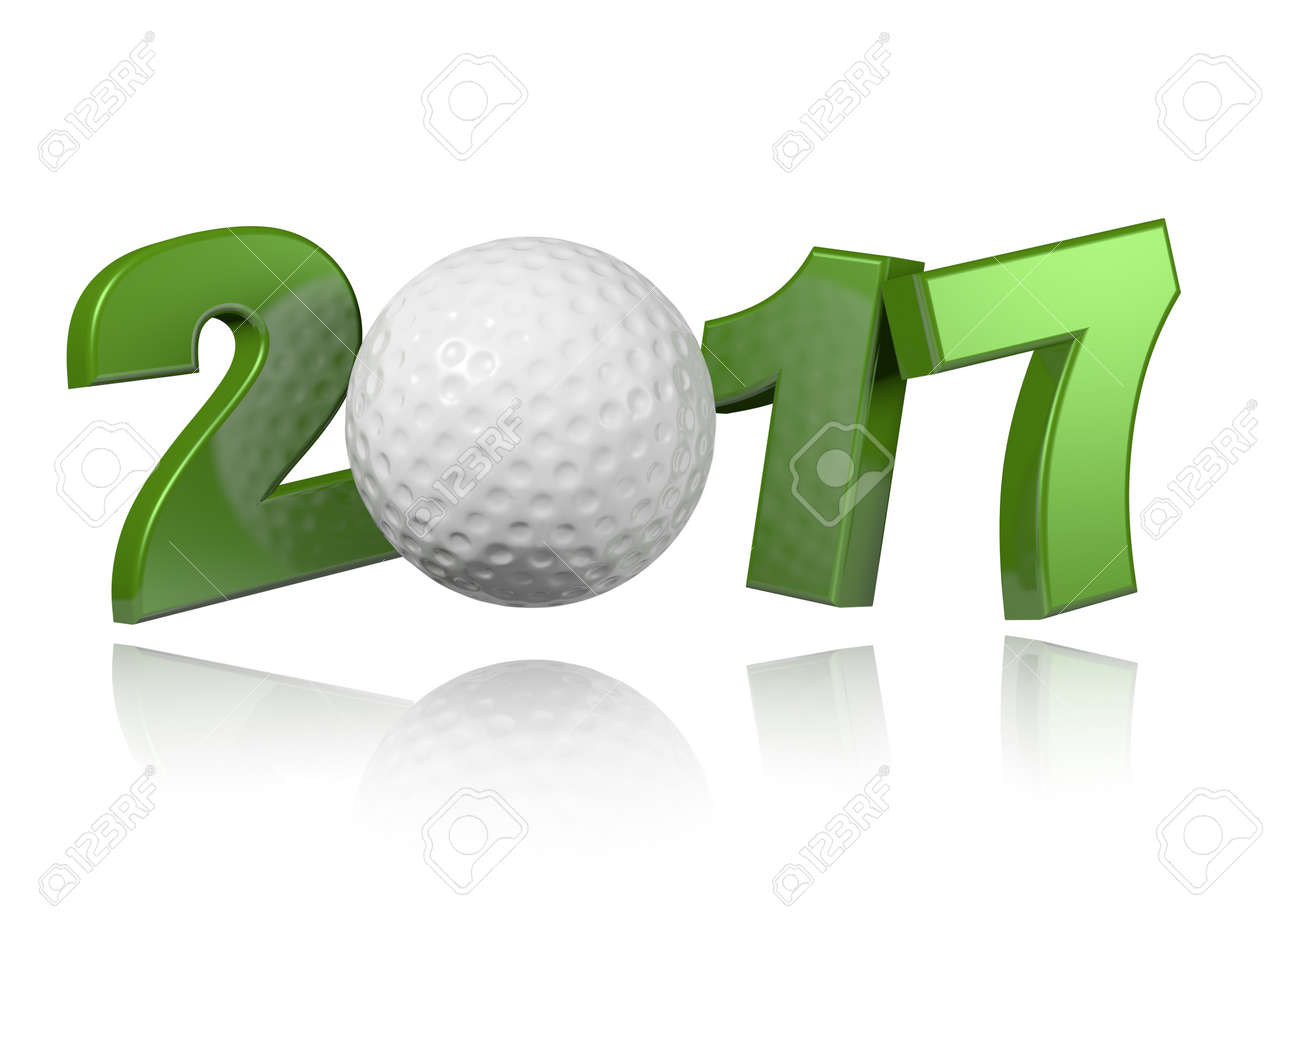 Golf 2017 design with a White Background - 62538397